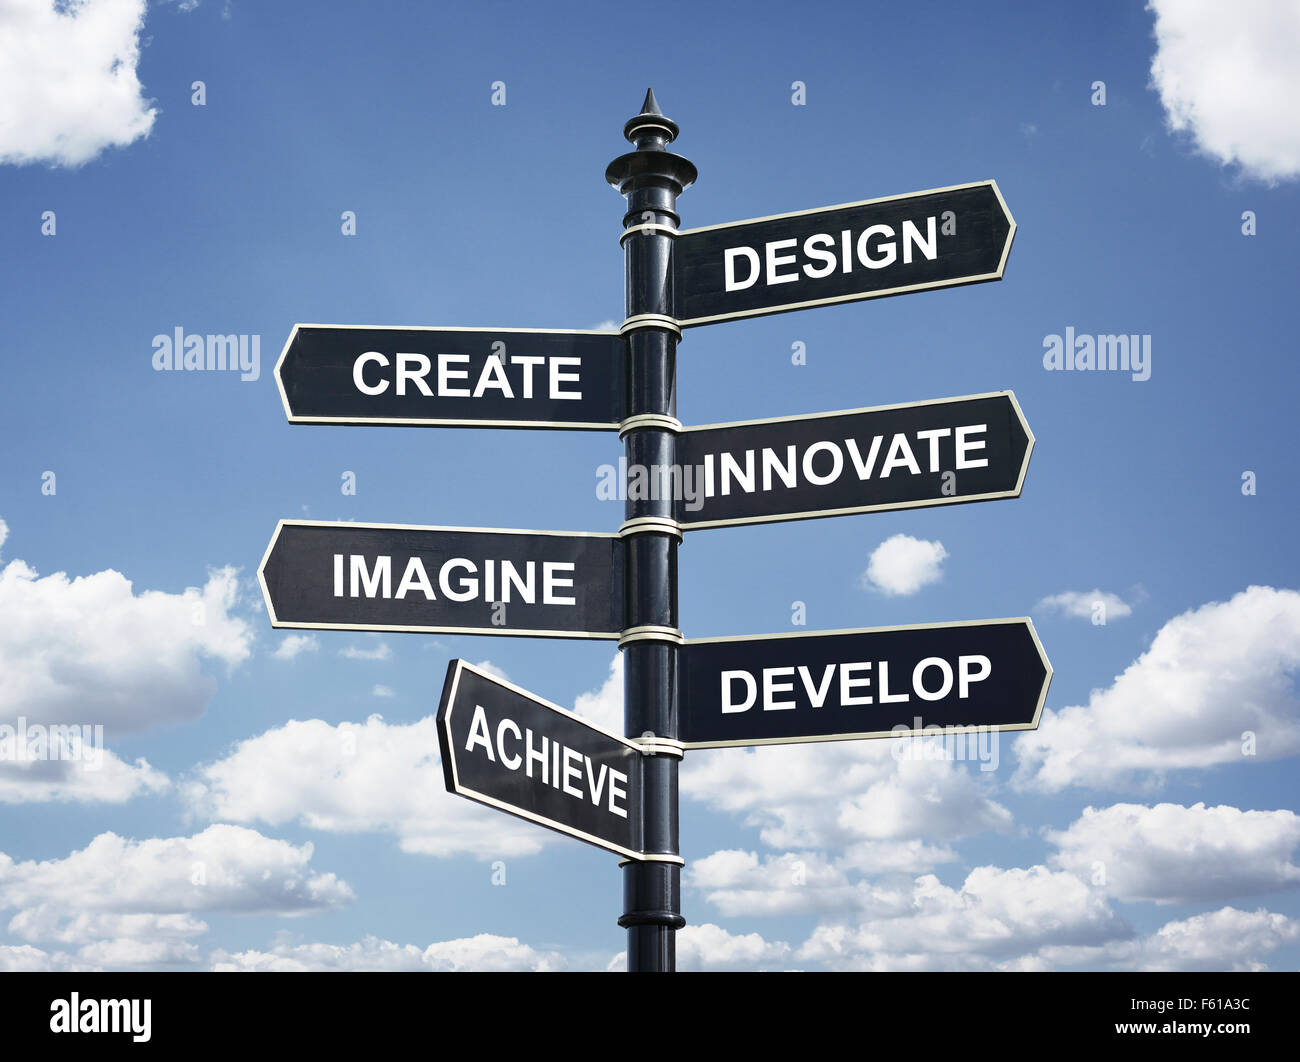 Design, create, innovate, imagine, develop and achieve motivational direction signpost - Stock Image